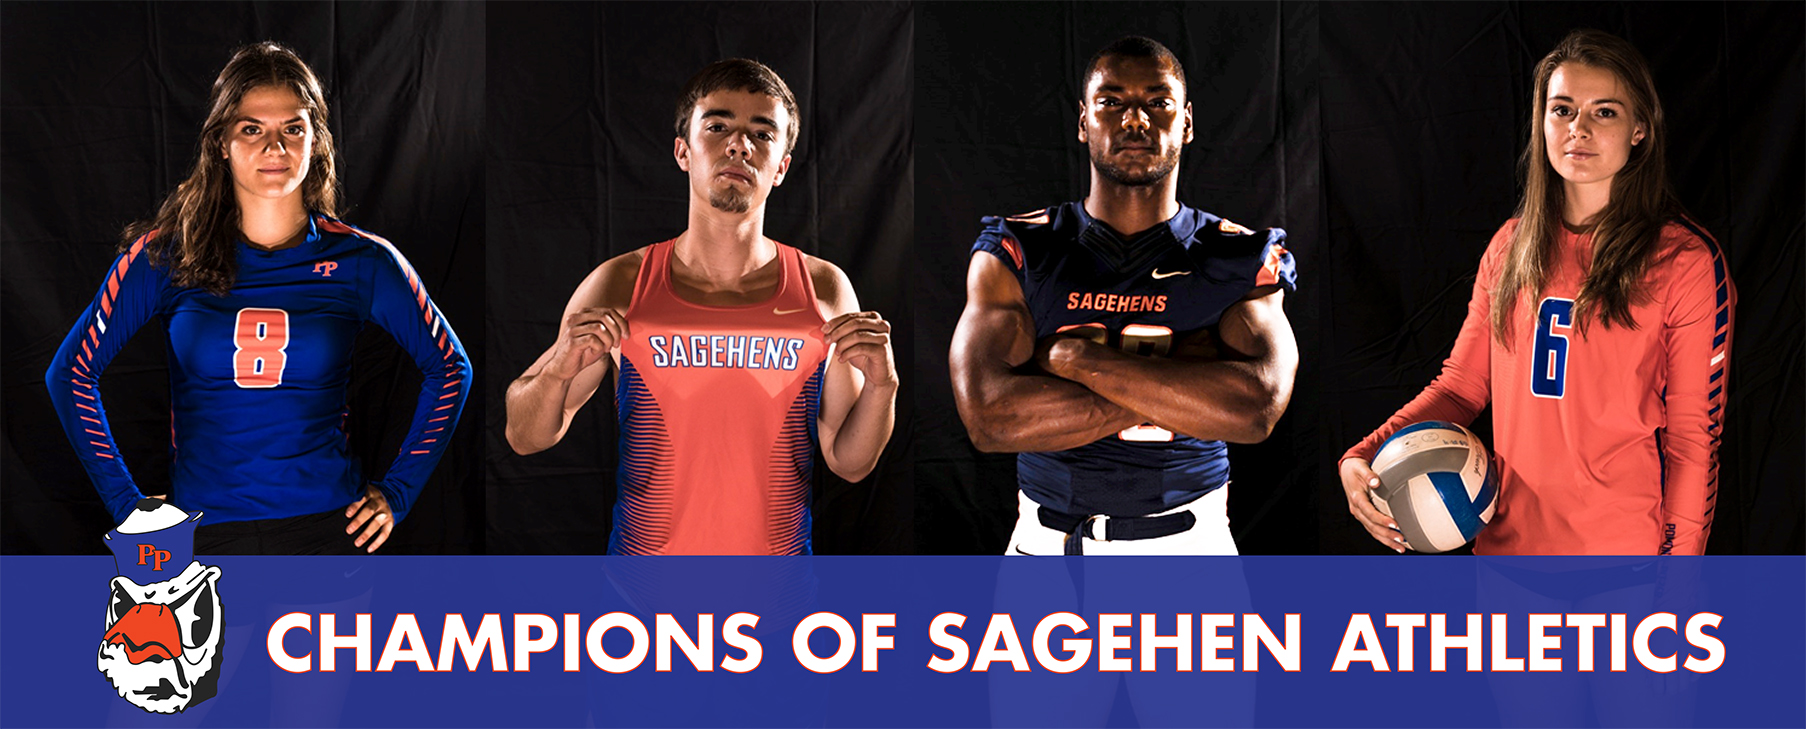 Champion of Sagehen Athletics Banner